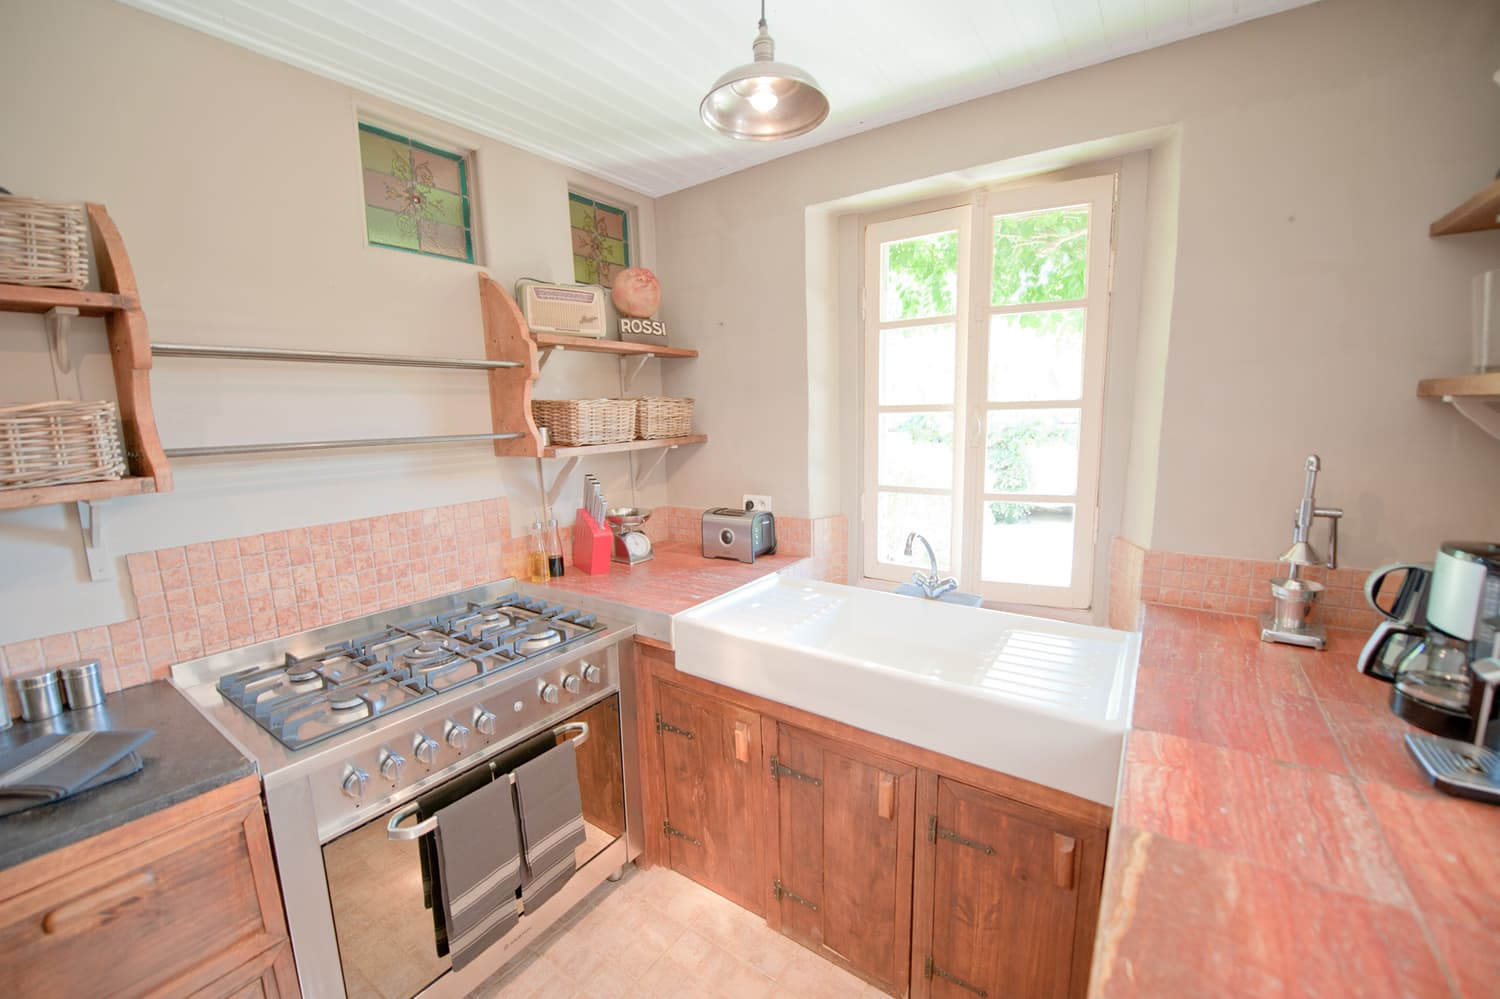 Kitchen in Dordogne rental home